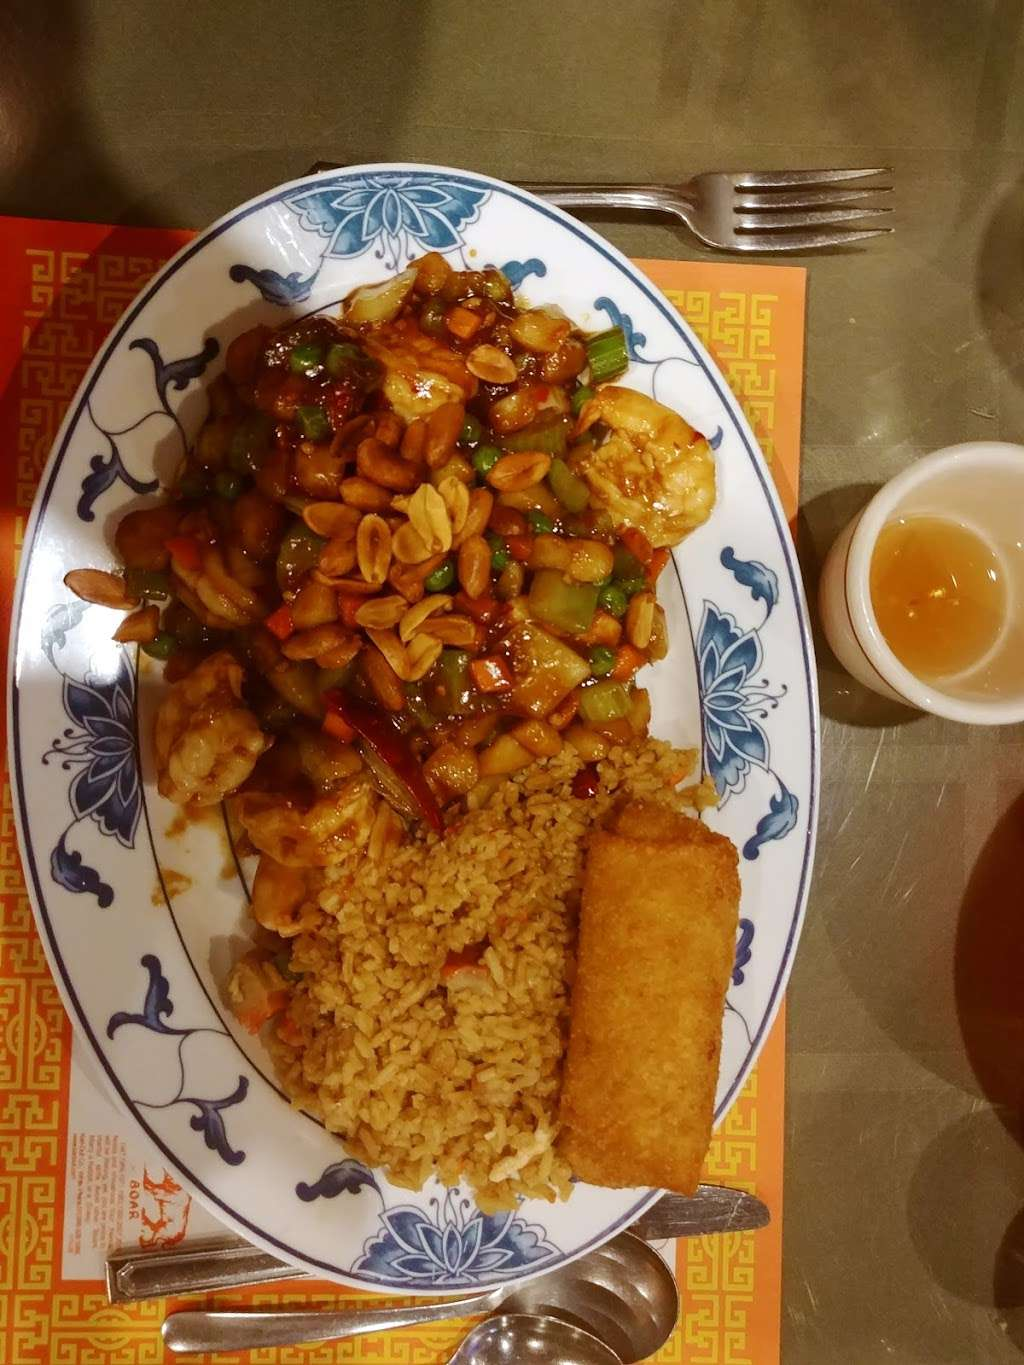 Canton House Chinese Restaurant - meal delivery  | Photo 5 of 10 | Address: 6095 SE Federal Hwy, Stuart, FL 34997, USA | Phone: (772) 288-1126